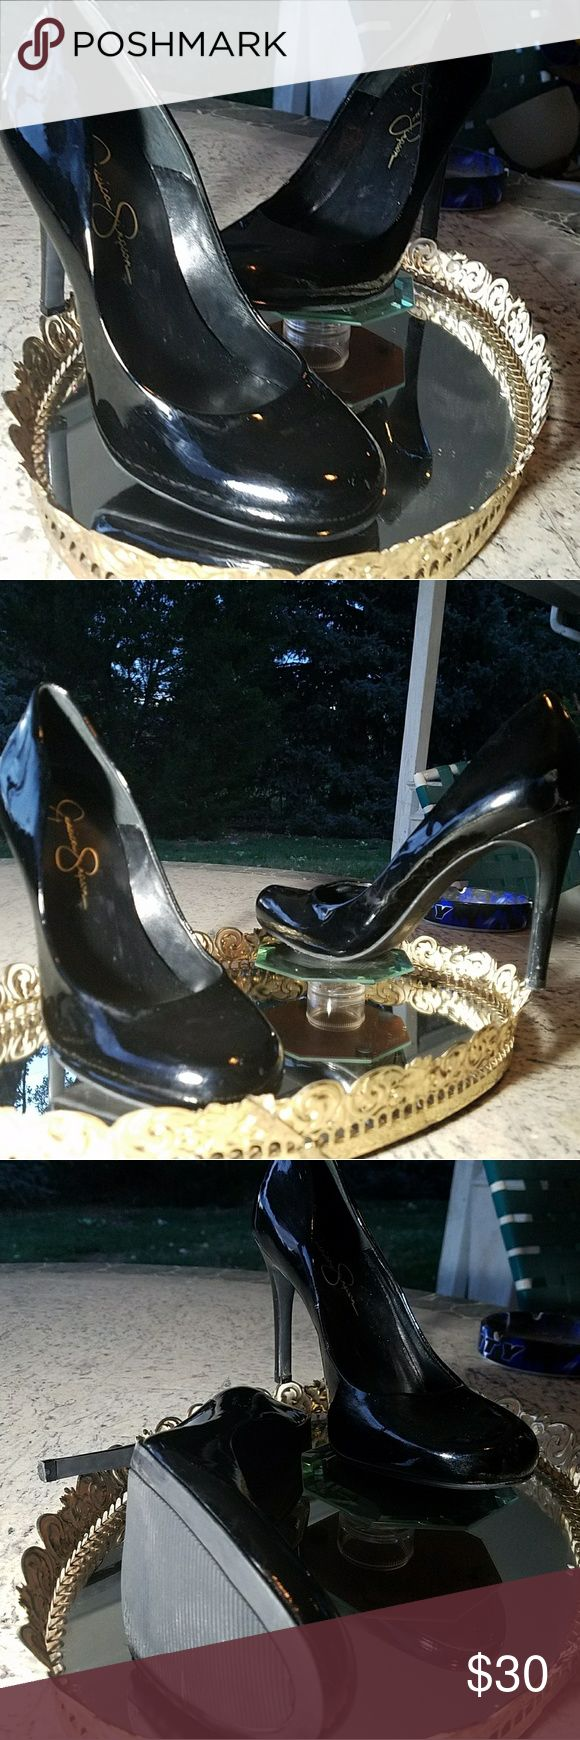 Jessica Simpson black patent leather pumps Jessica Simpson black patent leather pumps size 7 1/2 like new only worn couple times no scuffs or tears very very nice shoe Jessica Simpson Shoes Heels